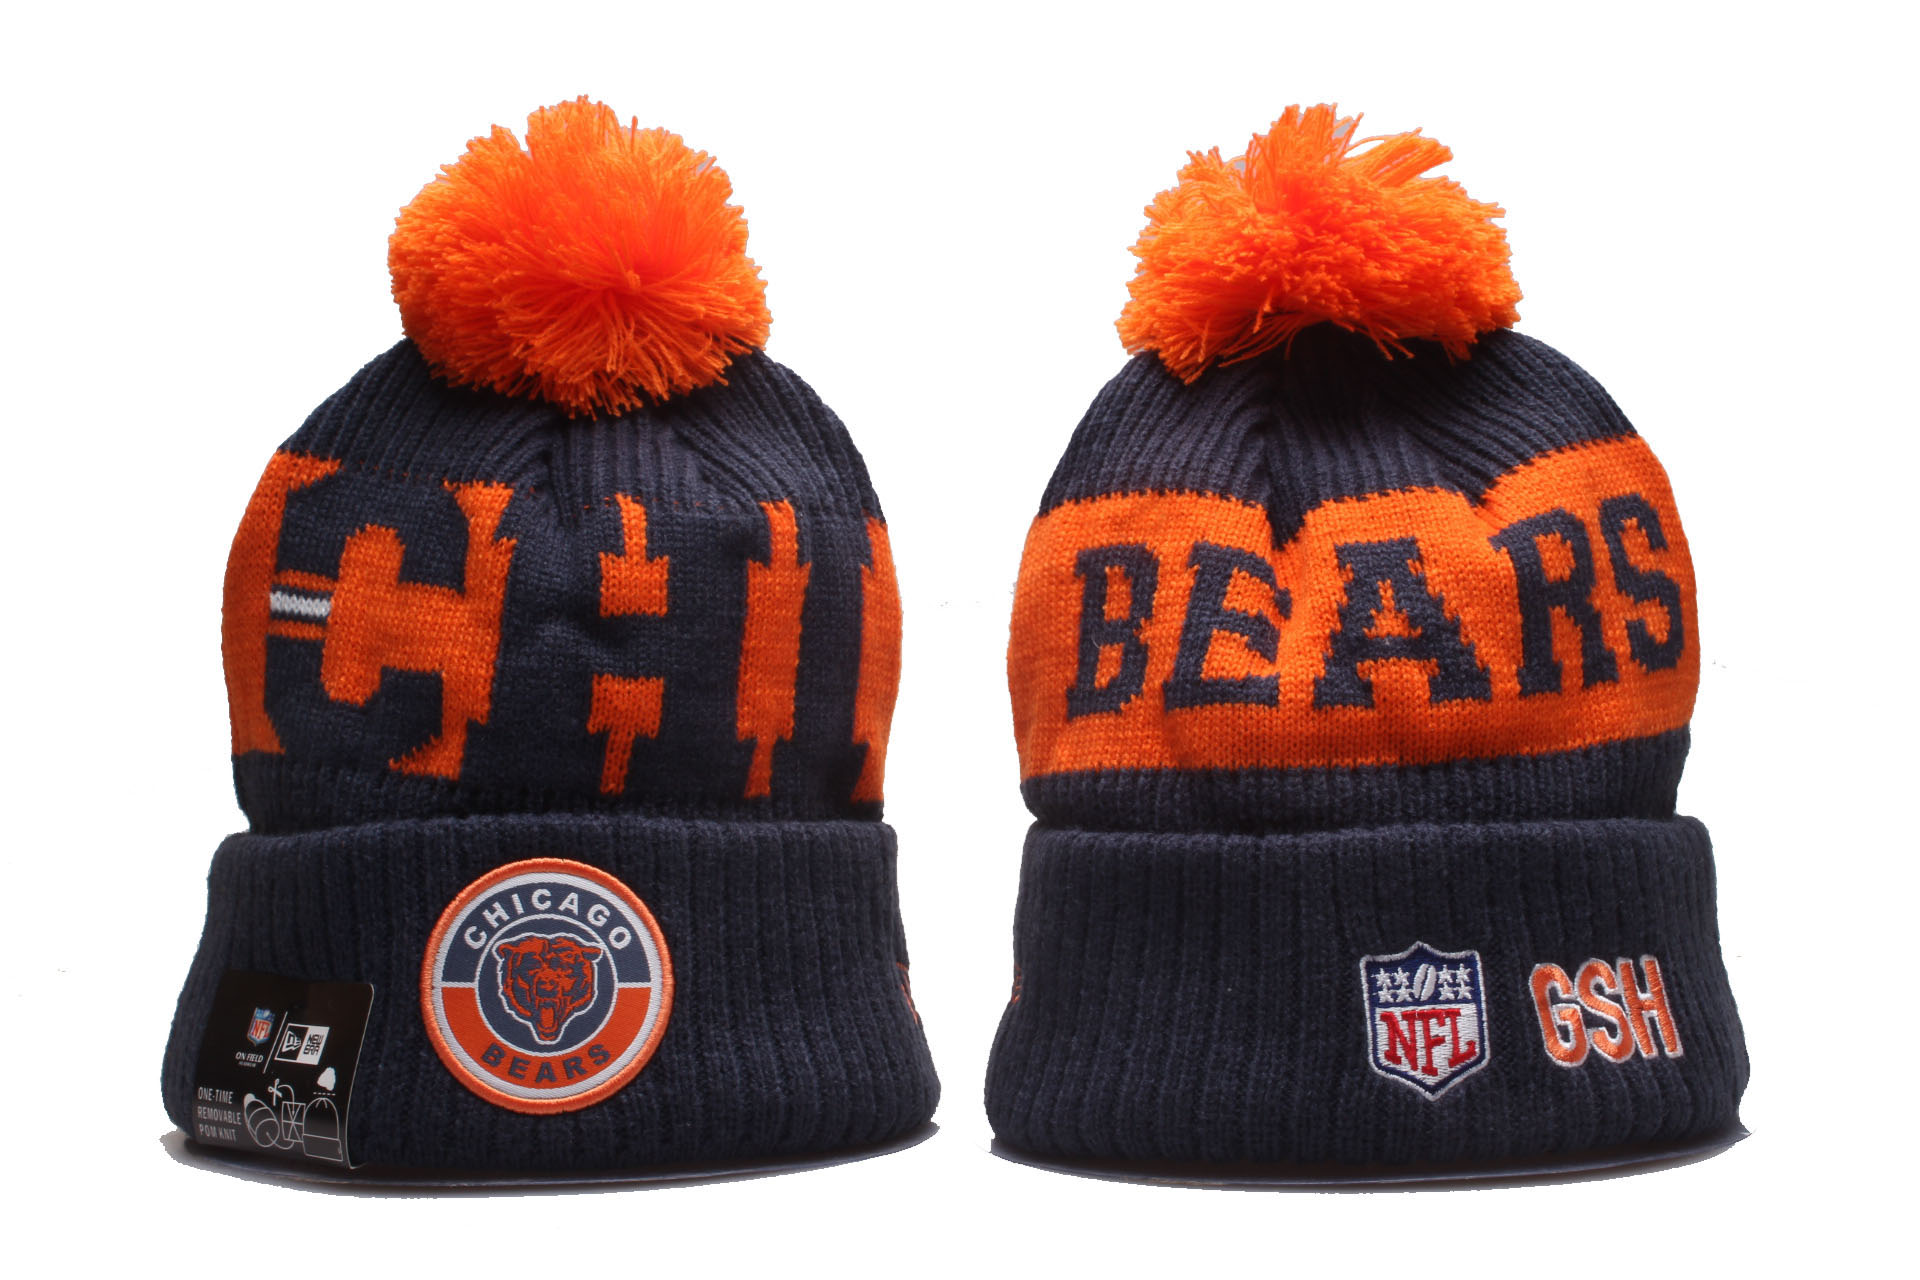 Cheap 2020 NFL CHICAGO BEARS 01